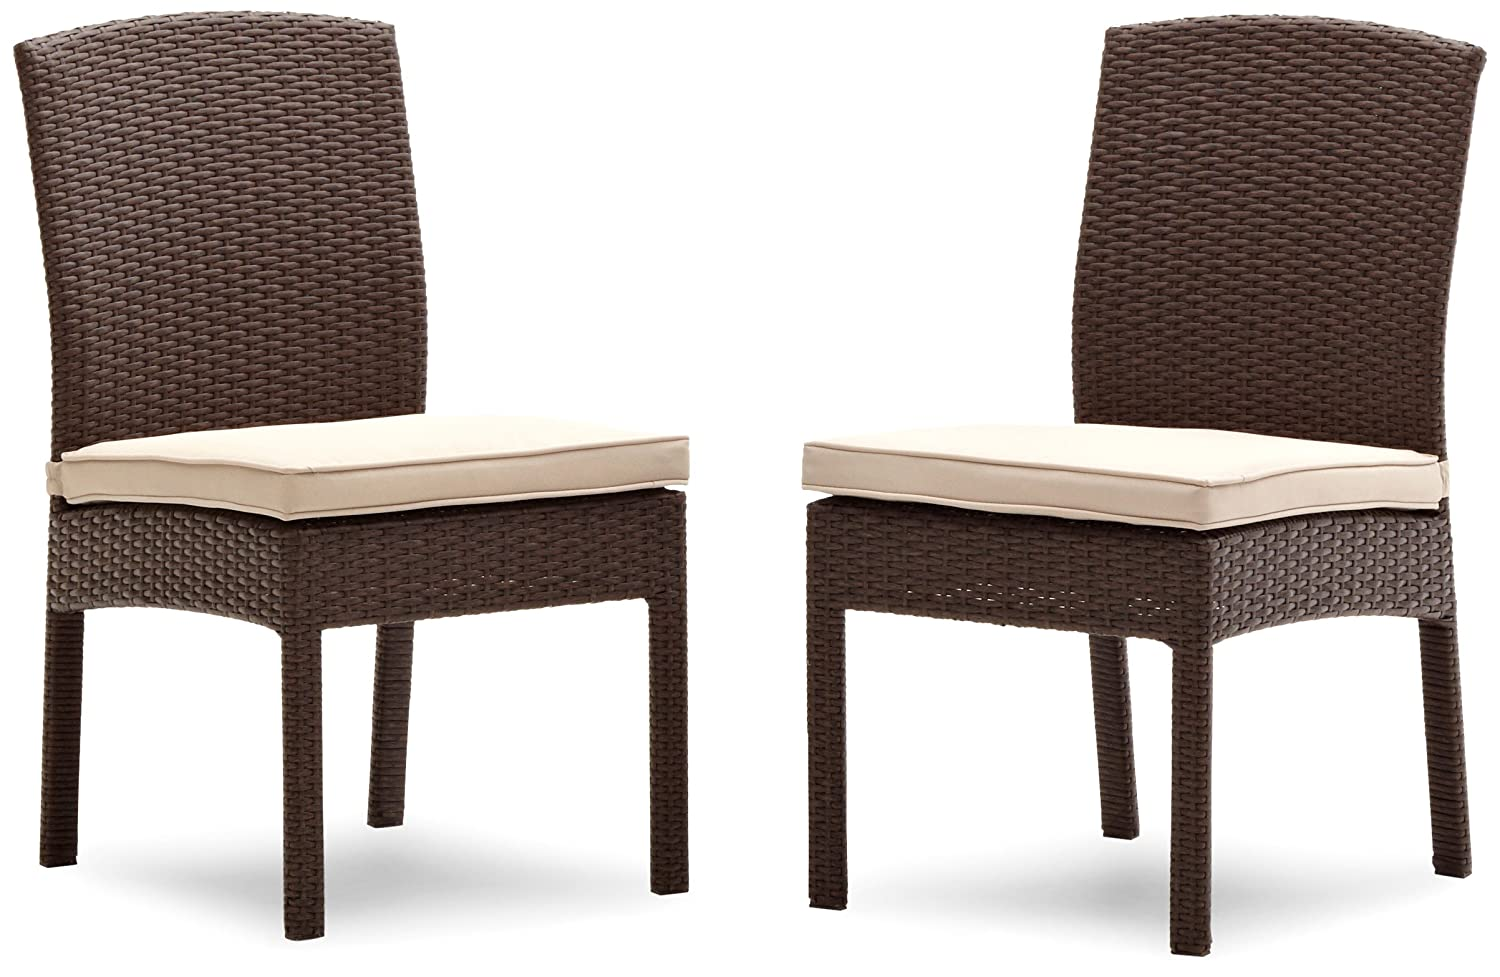 Amazon.com : Strathwood Griffen All-Weather Wicker Dining Armless Chair,  Dark Brown, Set of 2 : Patio Dining Chairs : Garden & Outdoor